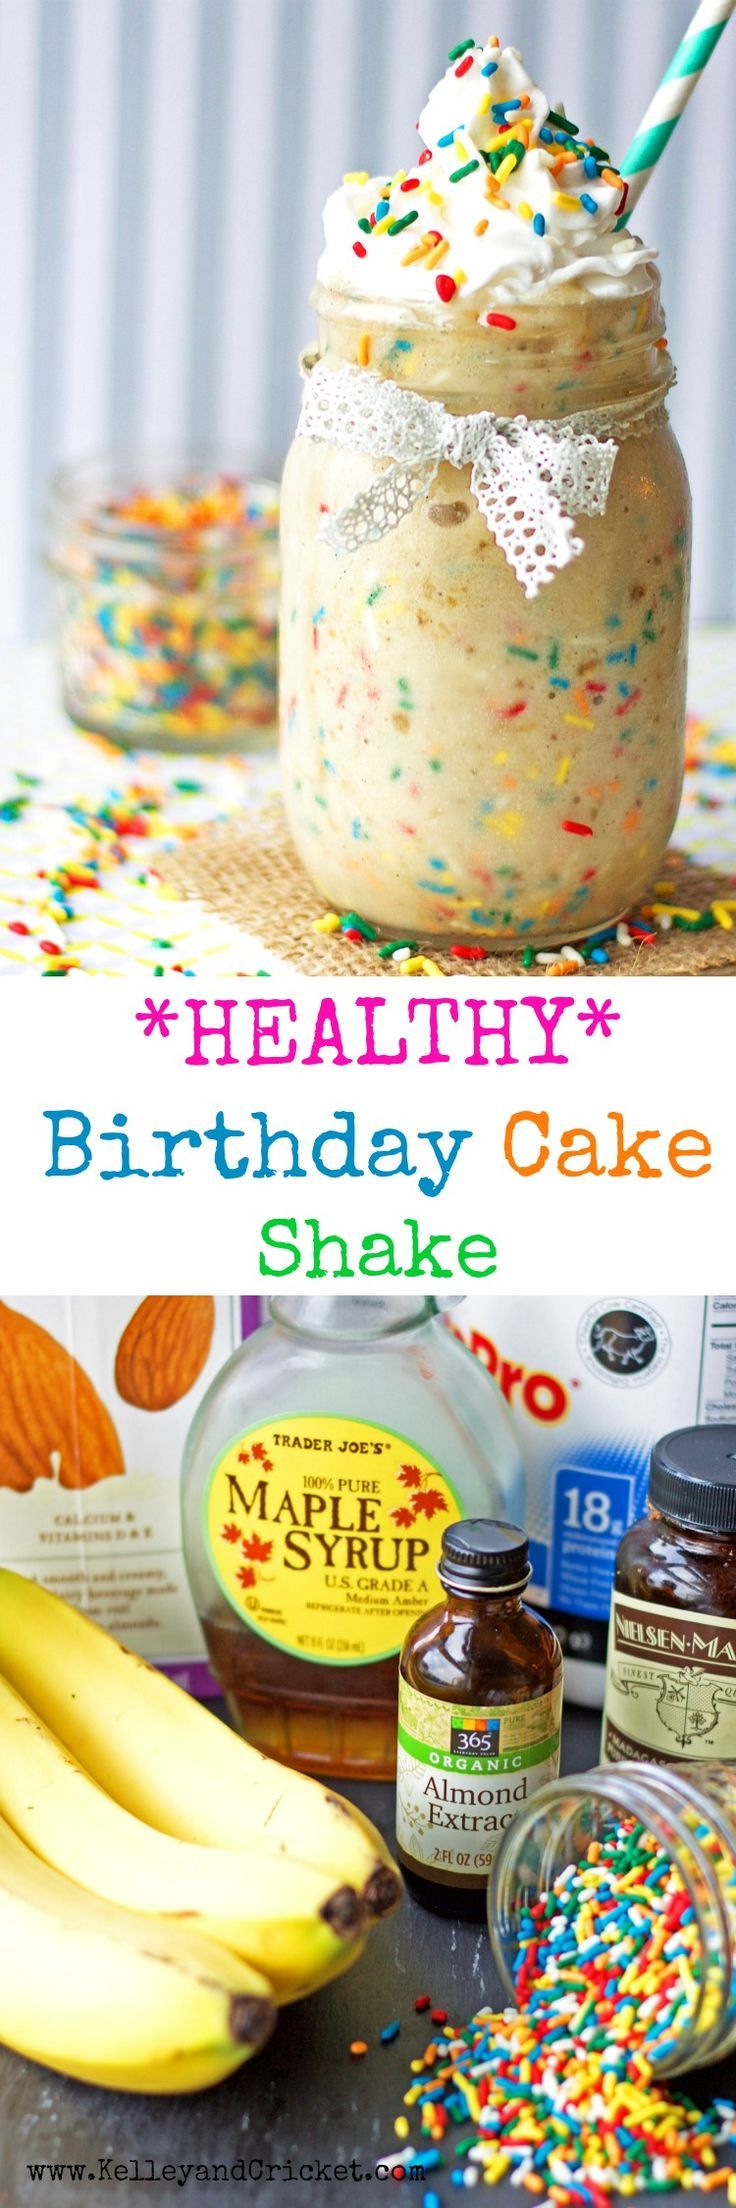 This HEALTHY, sweet and creamy birthday cake shake is full of healthy ingredients and protein to fuel your morning routine! Its like drinking dessert! Dessert Recipes Easy, Dessert Recipes Healthy, Dessert Recipes For A Crowd, Dessert Recipes Cake #healthycake #healthydessert #cake #cakeshake #shake #dessert #birthday #birthdayrecipes #dessertrecipe